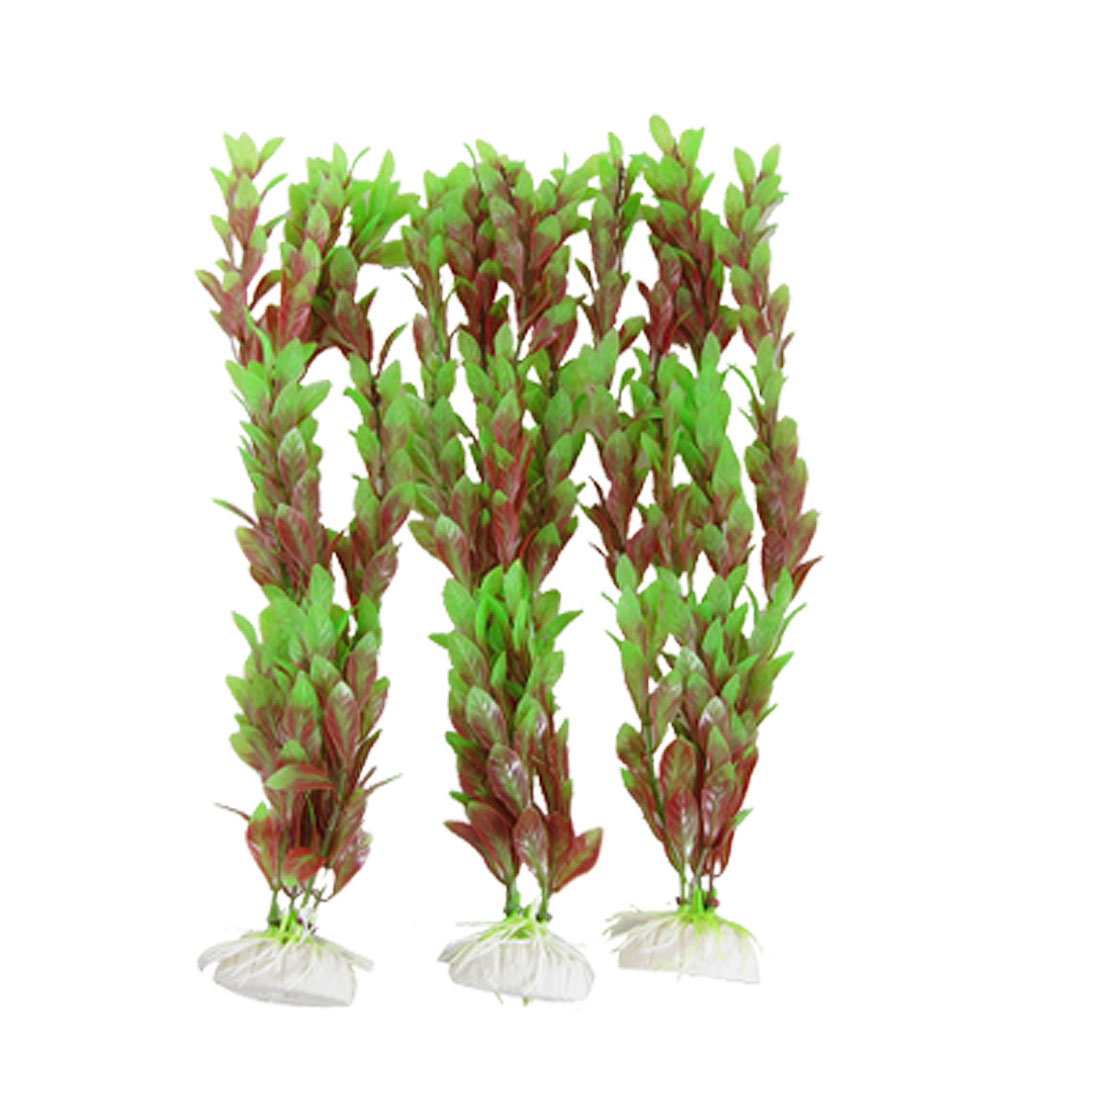 Fish Tank Aquascape Ornament Plastic Bacopa Lanigera Red Green 3Pcs